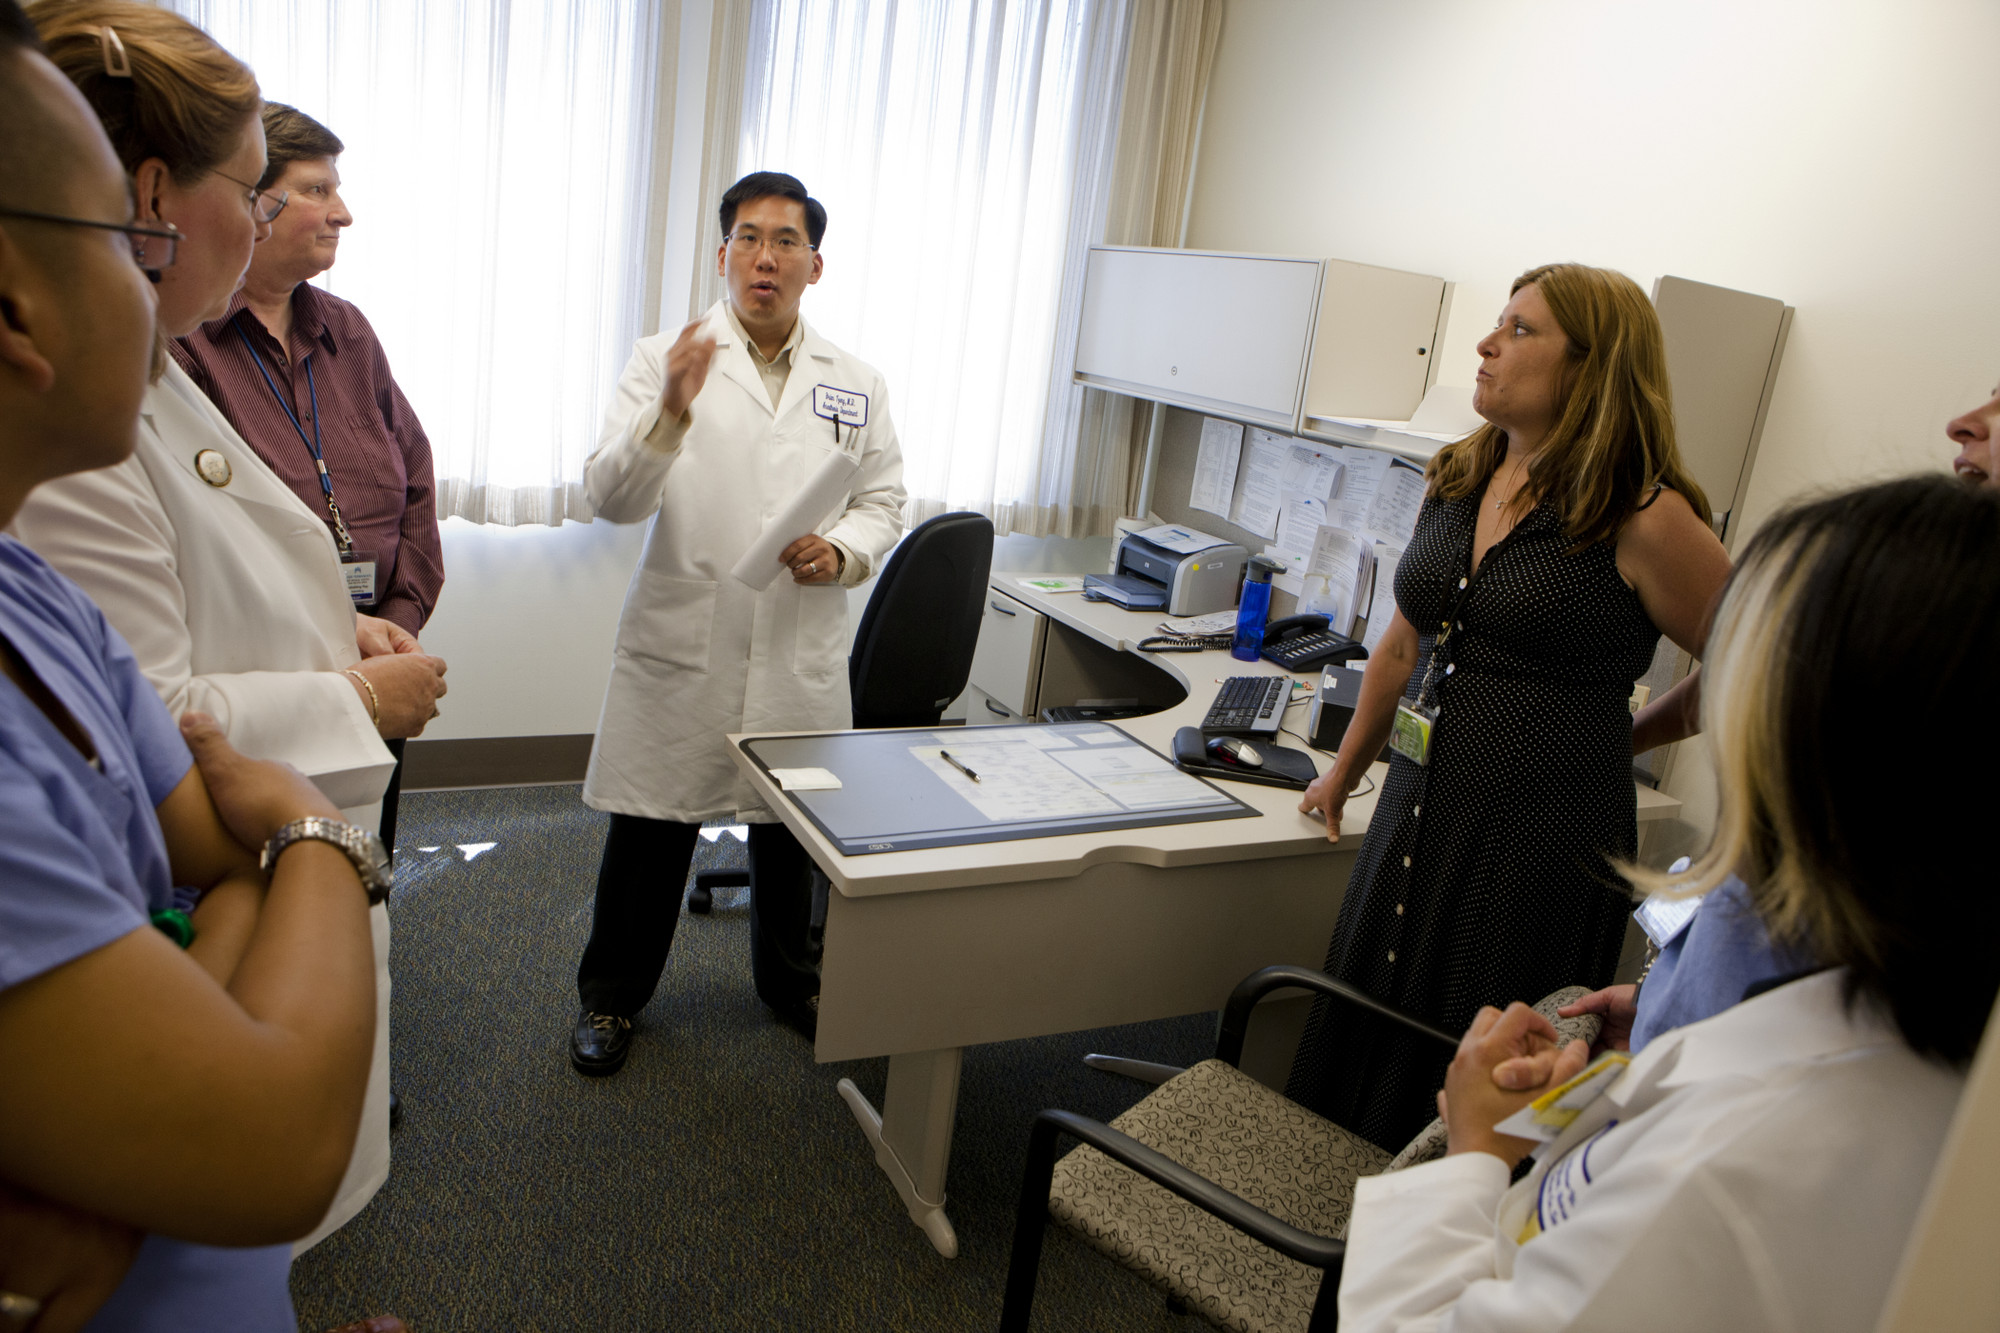 Doctor and health care workers in an office